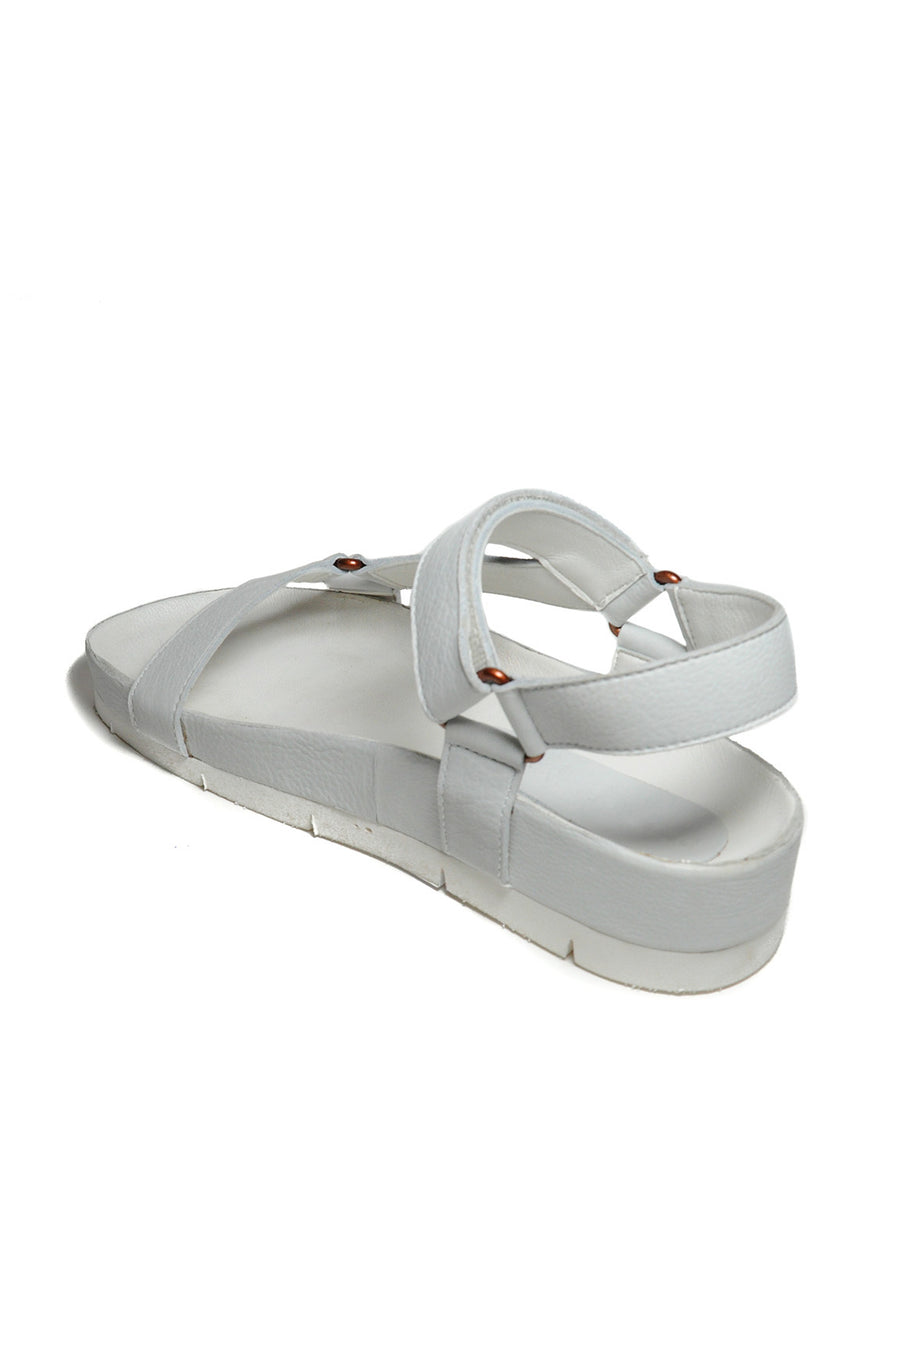 Newport White Leather Sandal Front